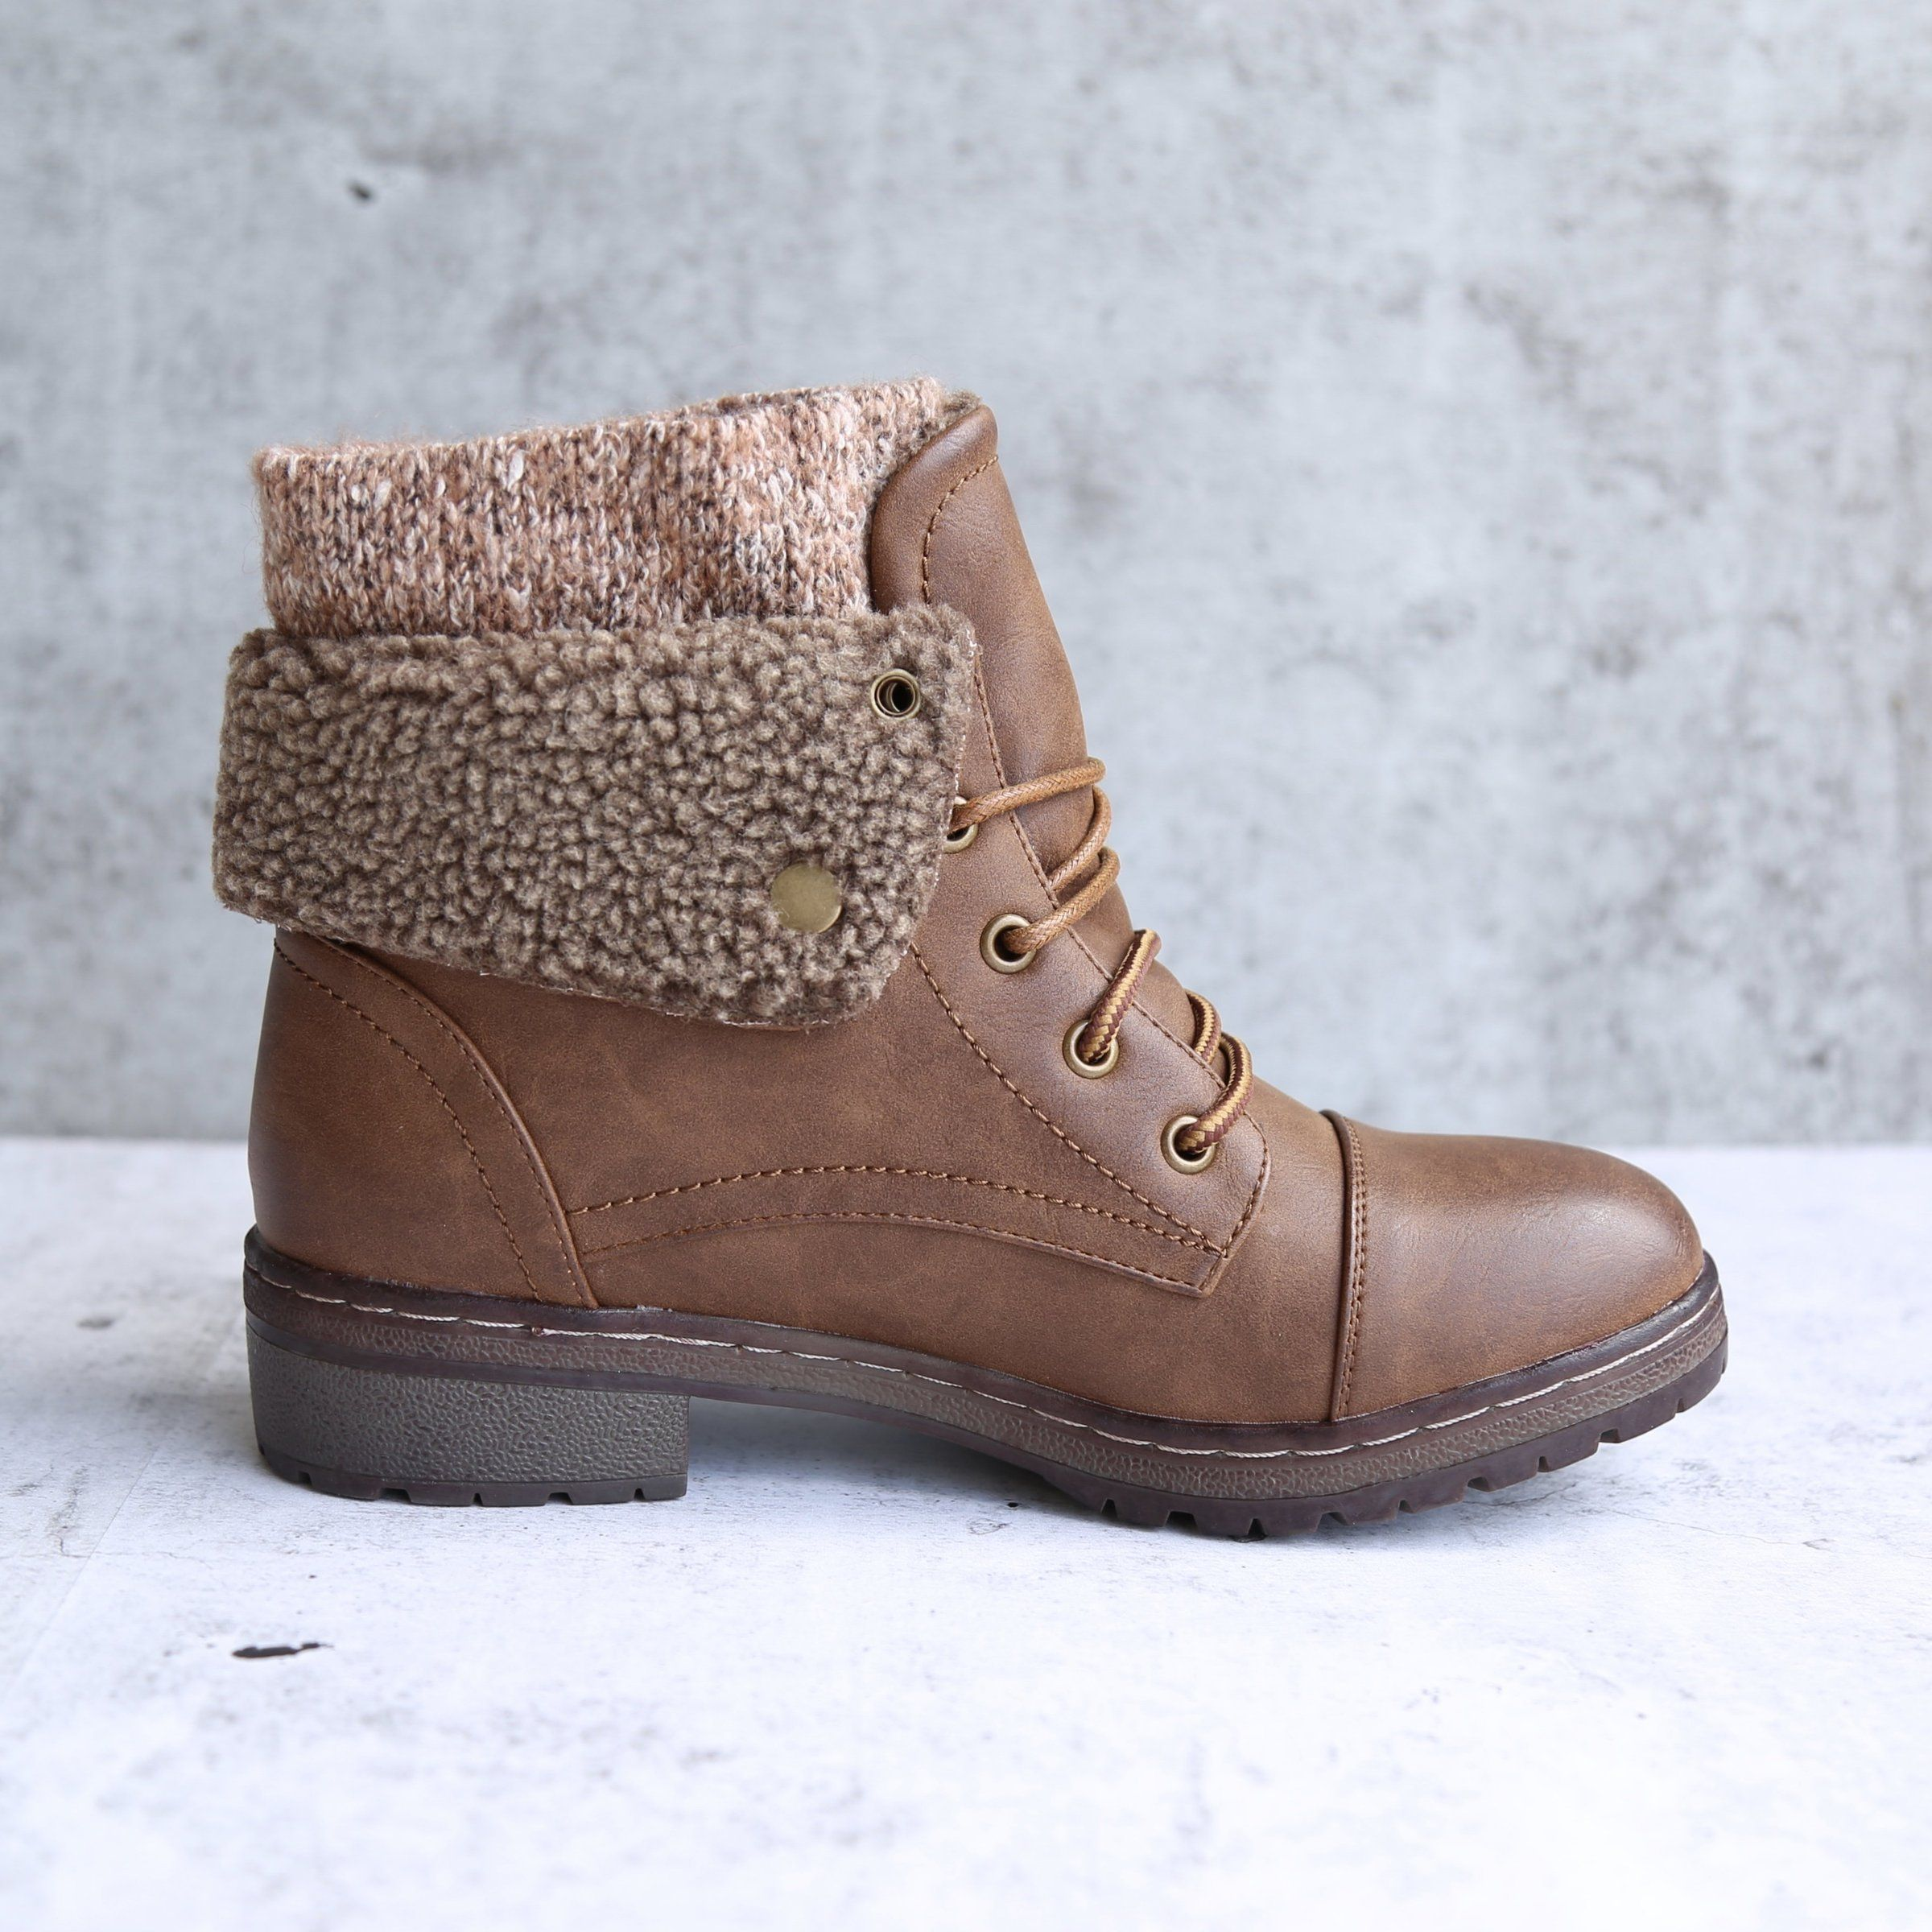 cf634d6198 coolway bring betta faux leather knit sweater cuff ankle boots shophearts